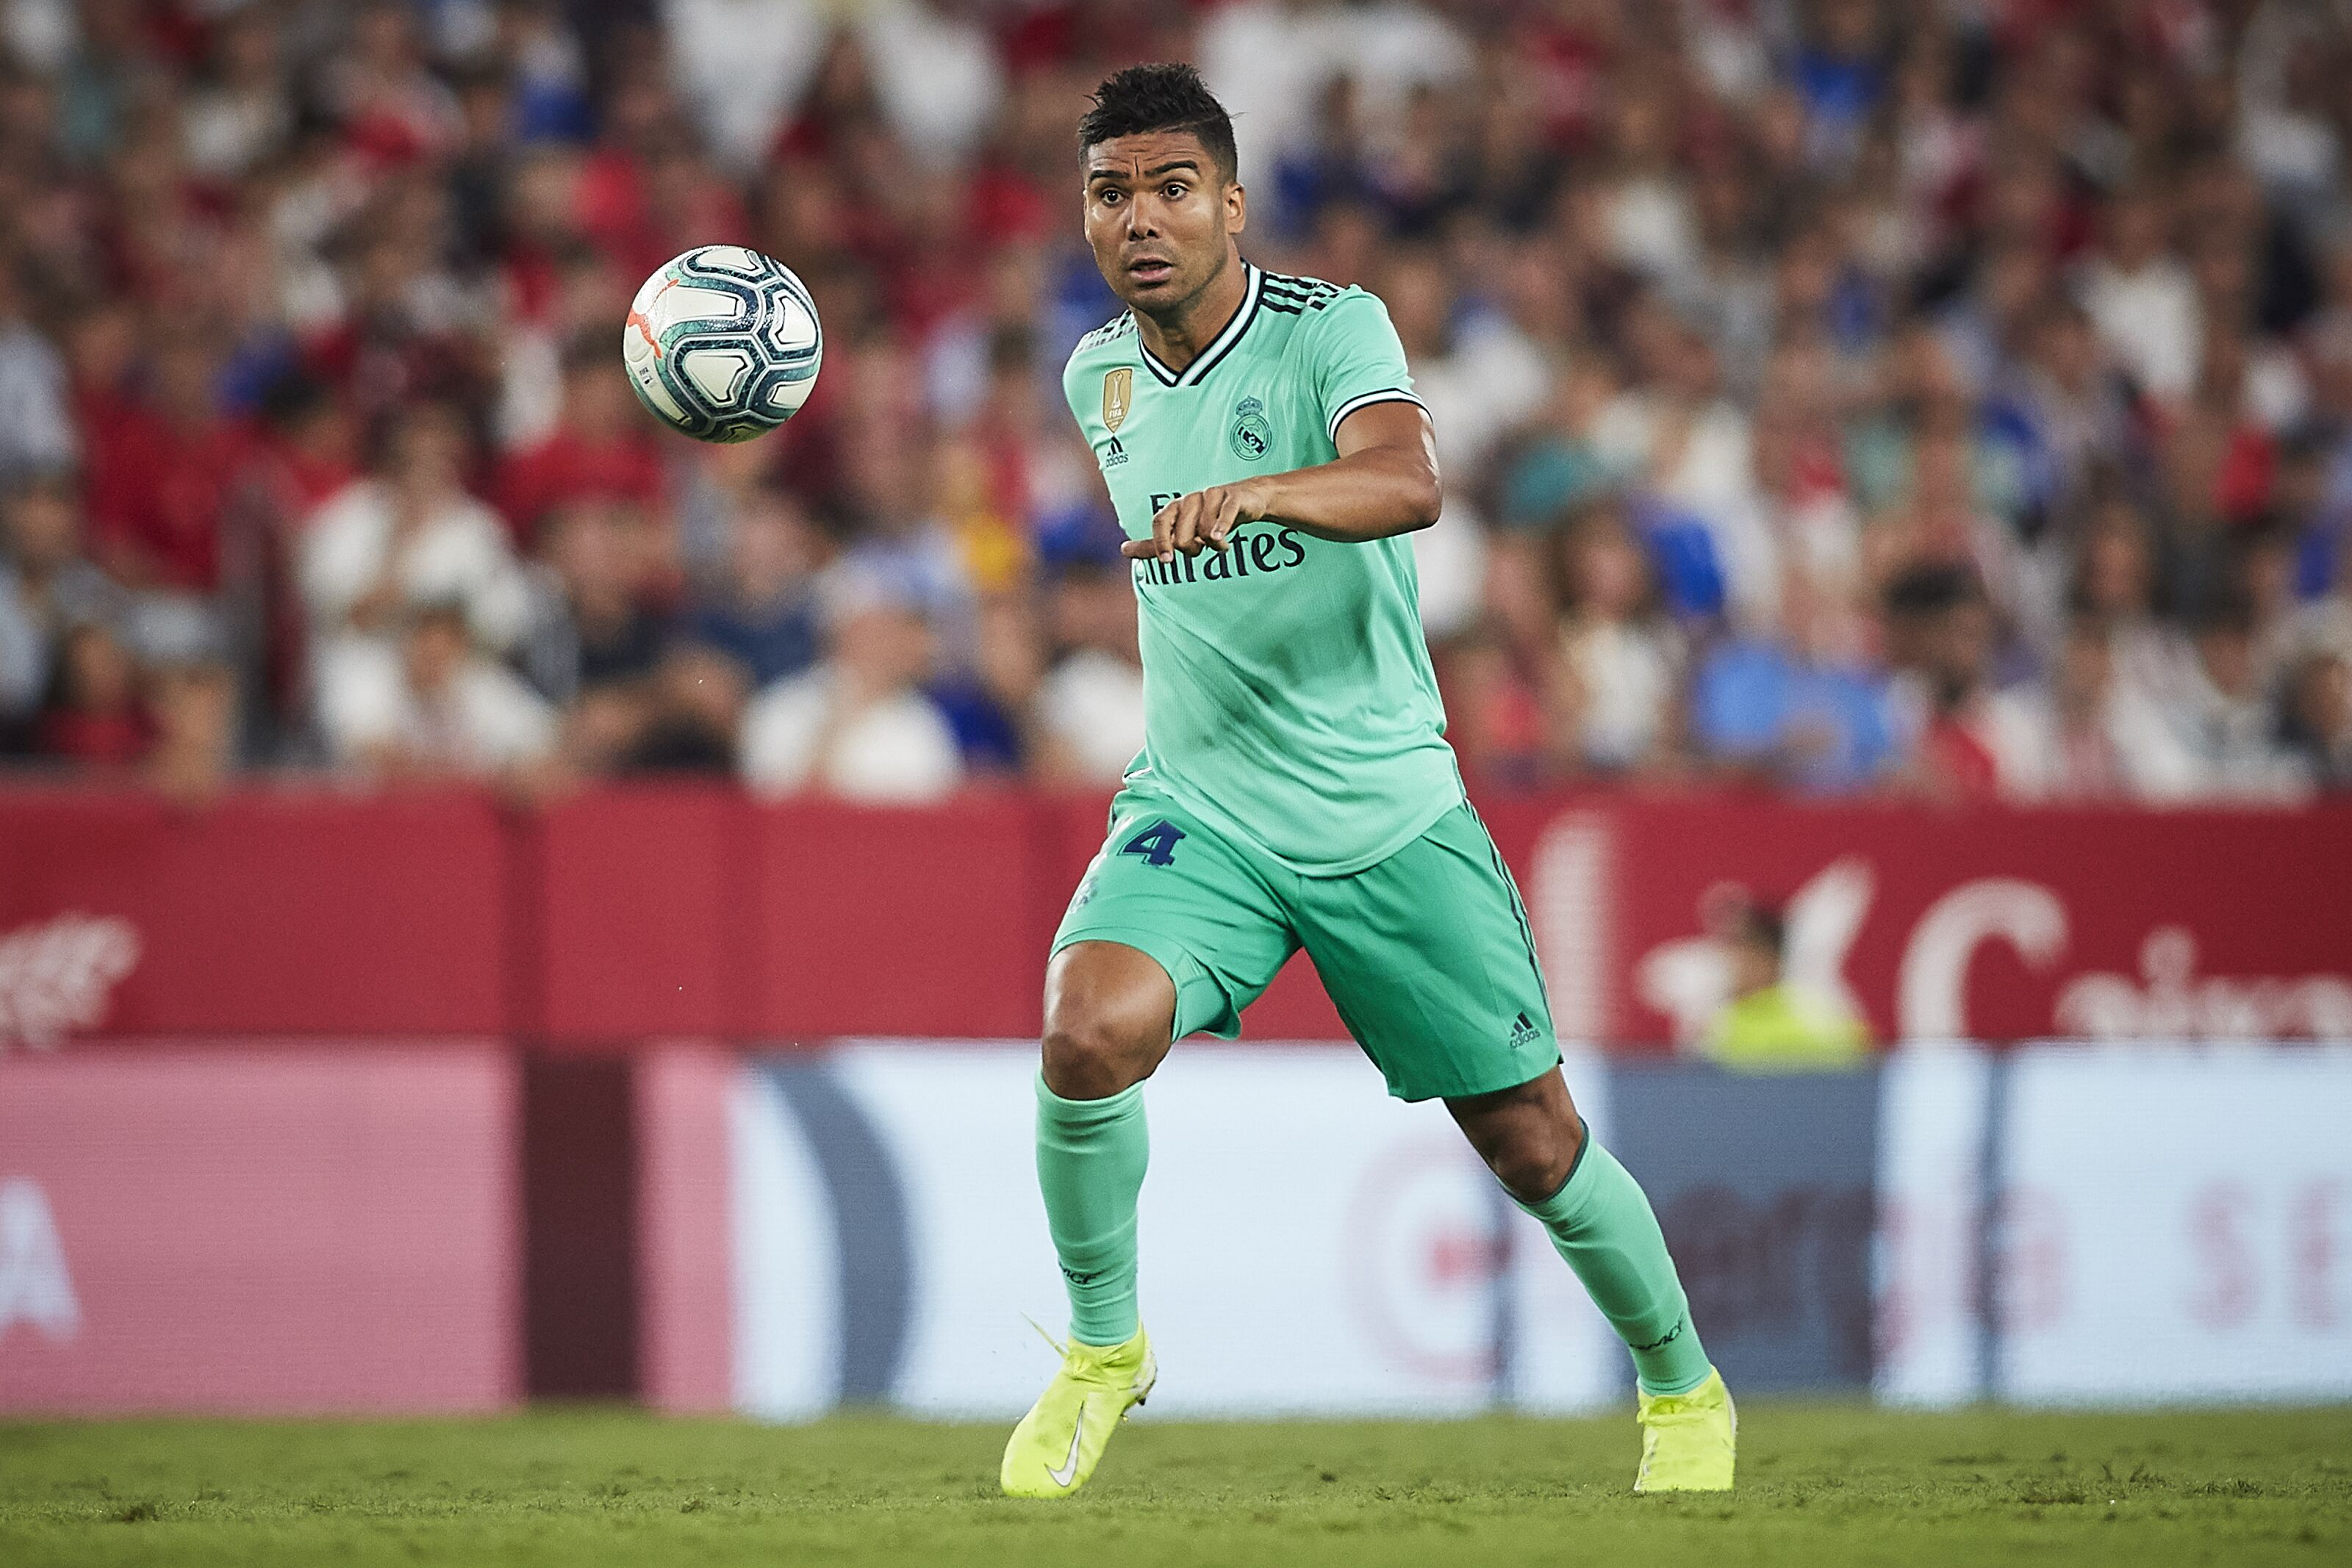 Real Madrid at Mallorca 5 storylines: Will Casemiro get some rest?